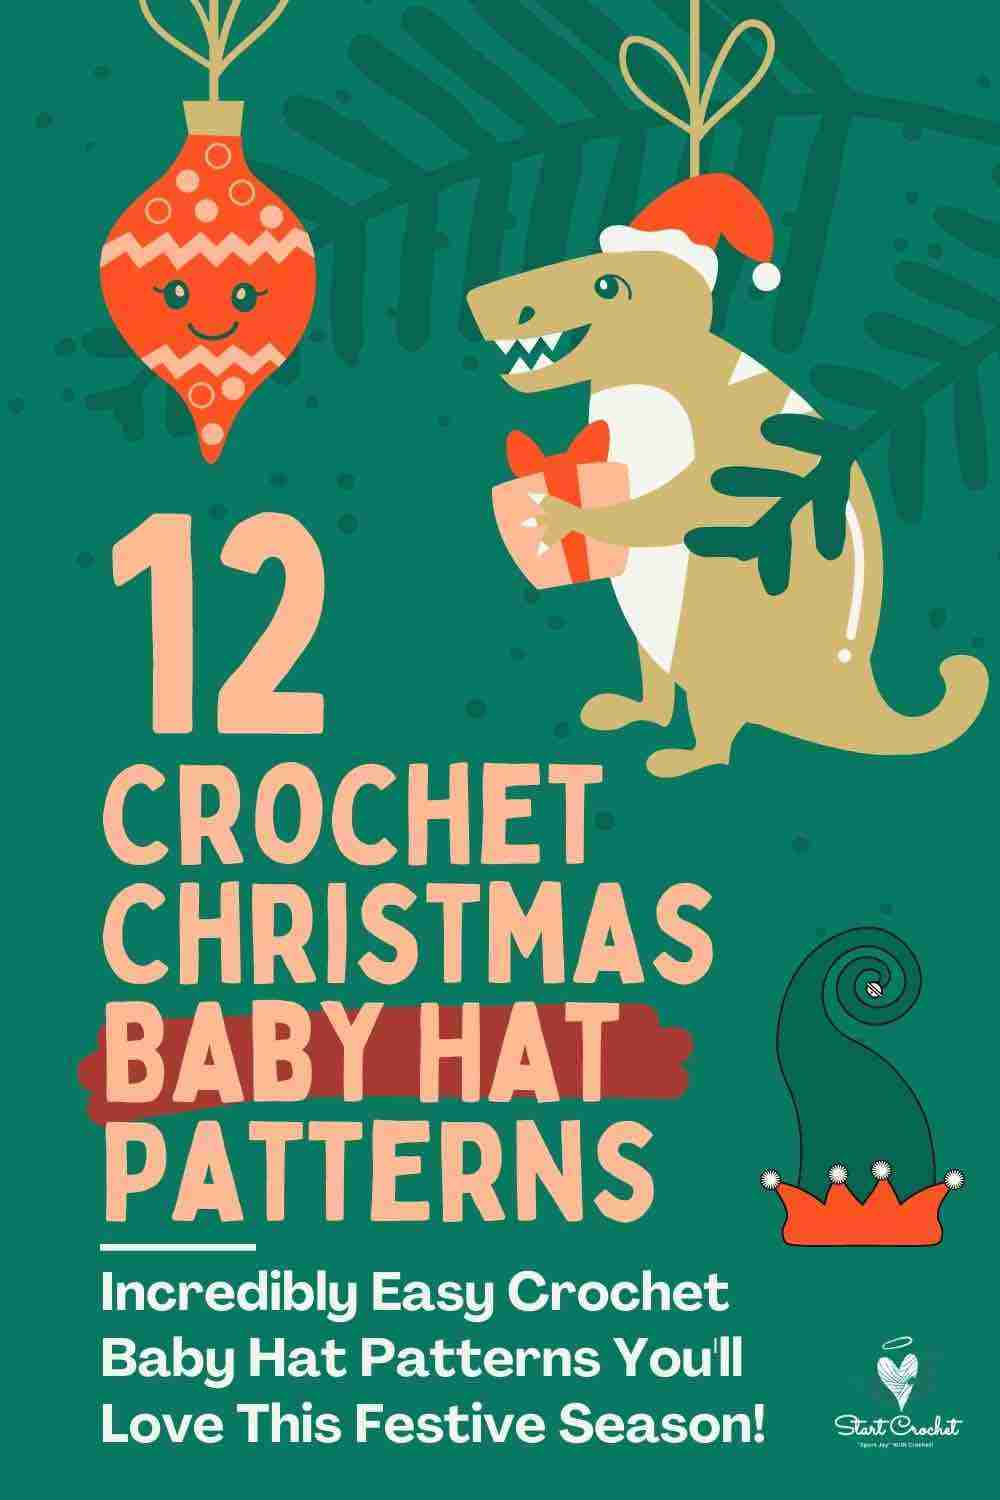 Green And Red Handcrafted Illustrations Christmas Post Teaser Pinterest Pin